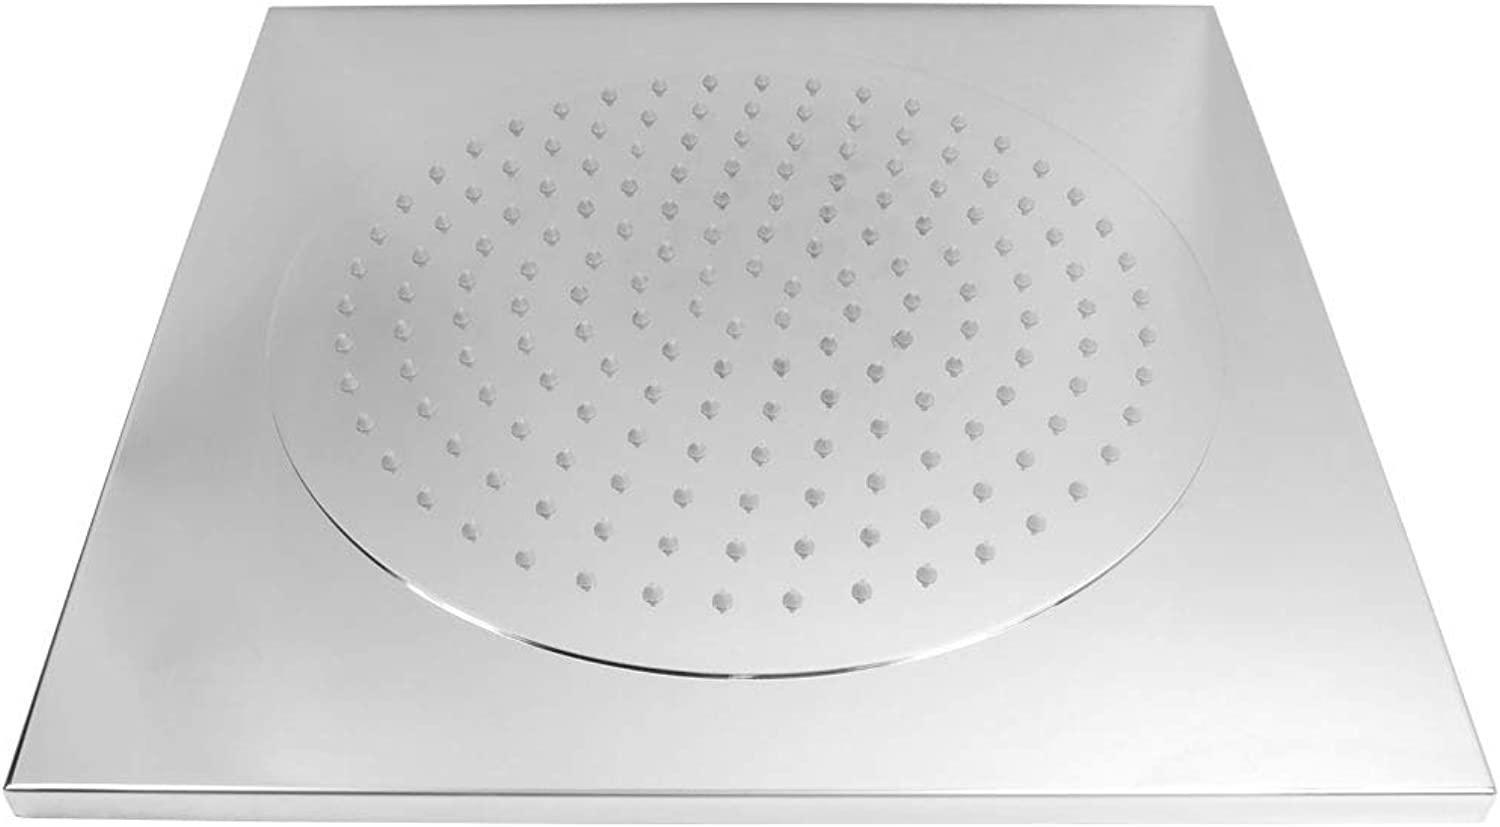 Stainless Steel Ceiling Shower 500mm x 500mm x 15mm by Sanlingo